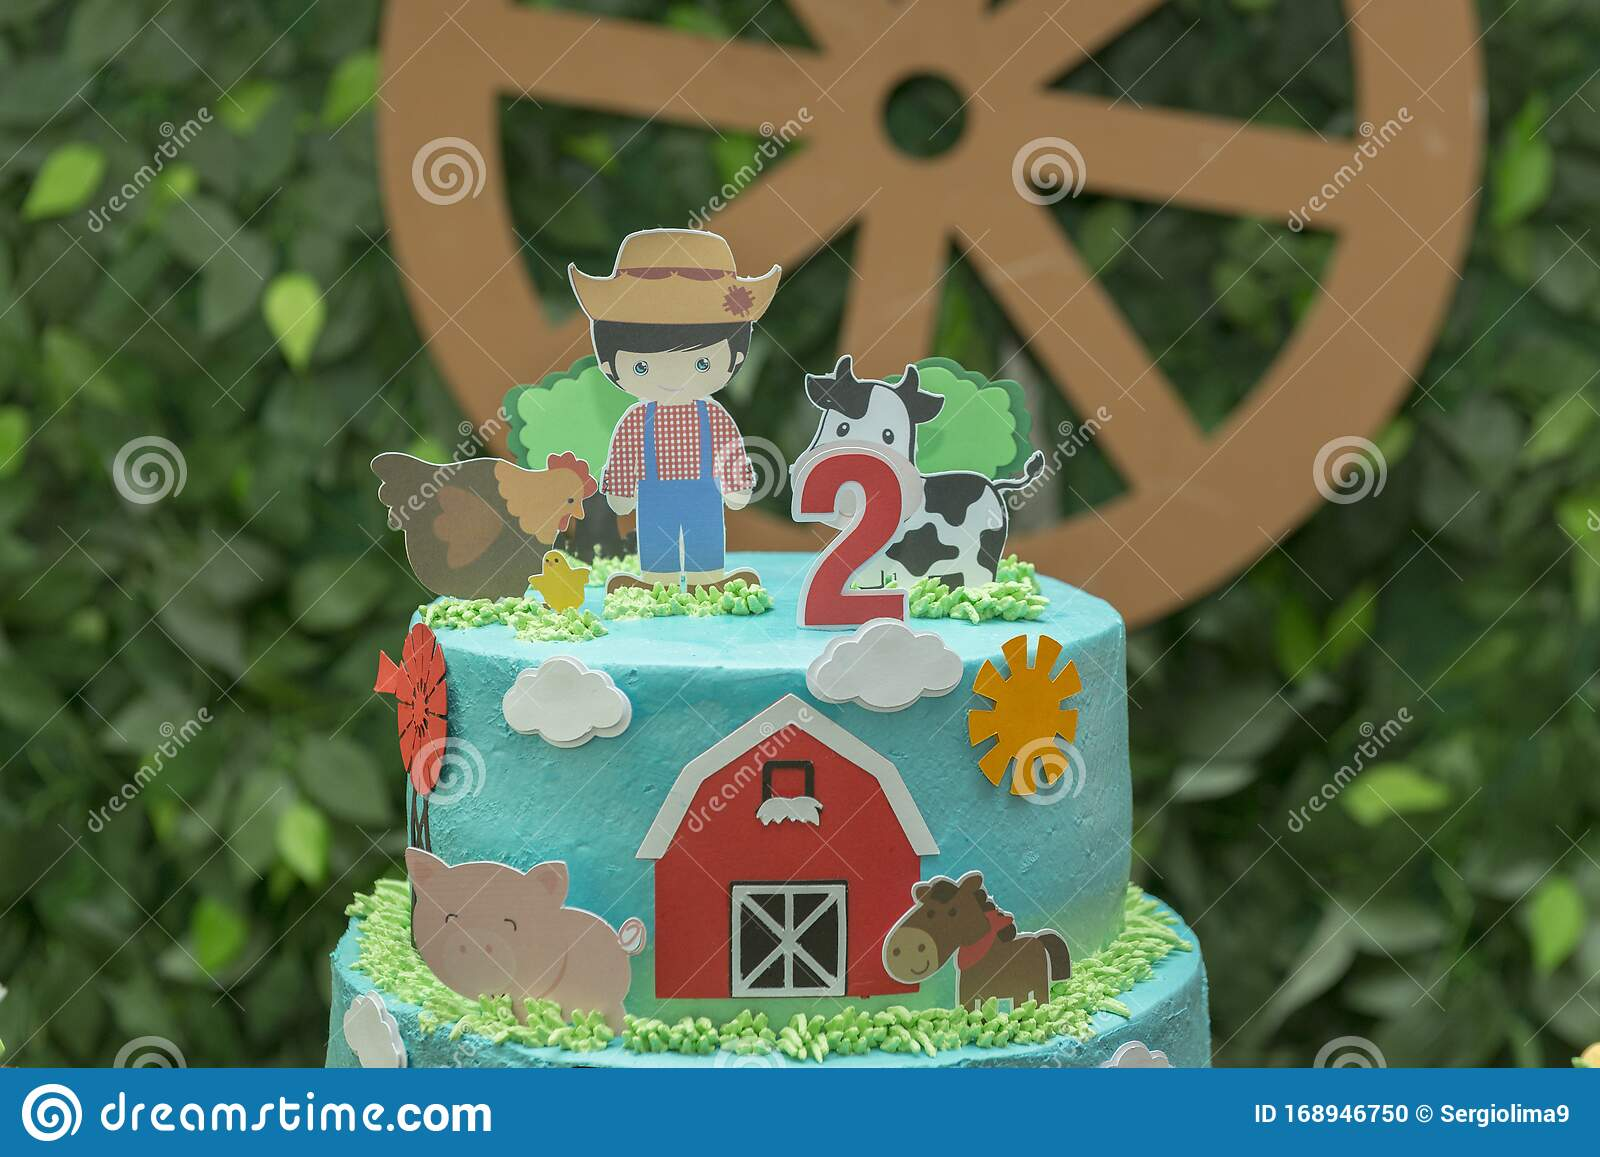 Farm Theme Boy Birthday Cake Beautiful Decorated Cake Farmer Barn Donkey Cow And Chicken Selective Focus 2 Year Anniversary Stock Photo Image Of Animal Cakestand 168946750